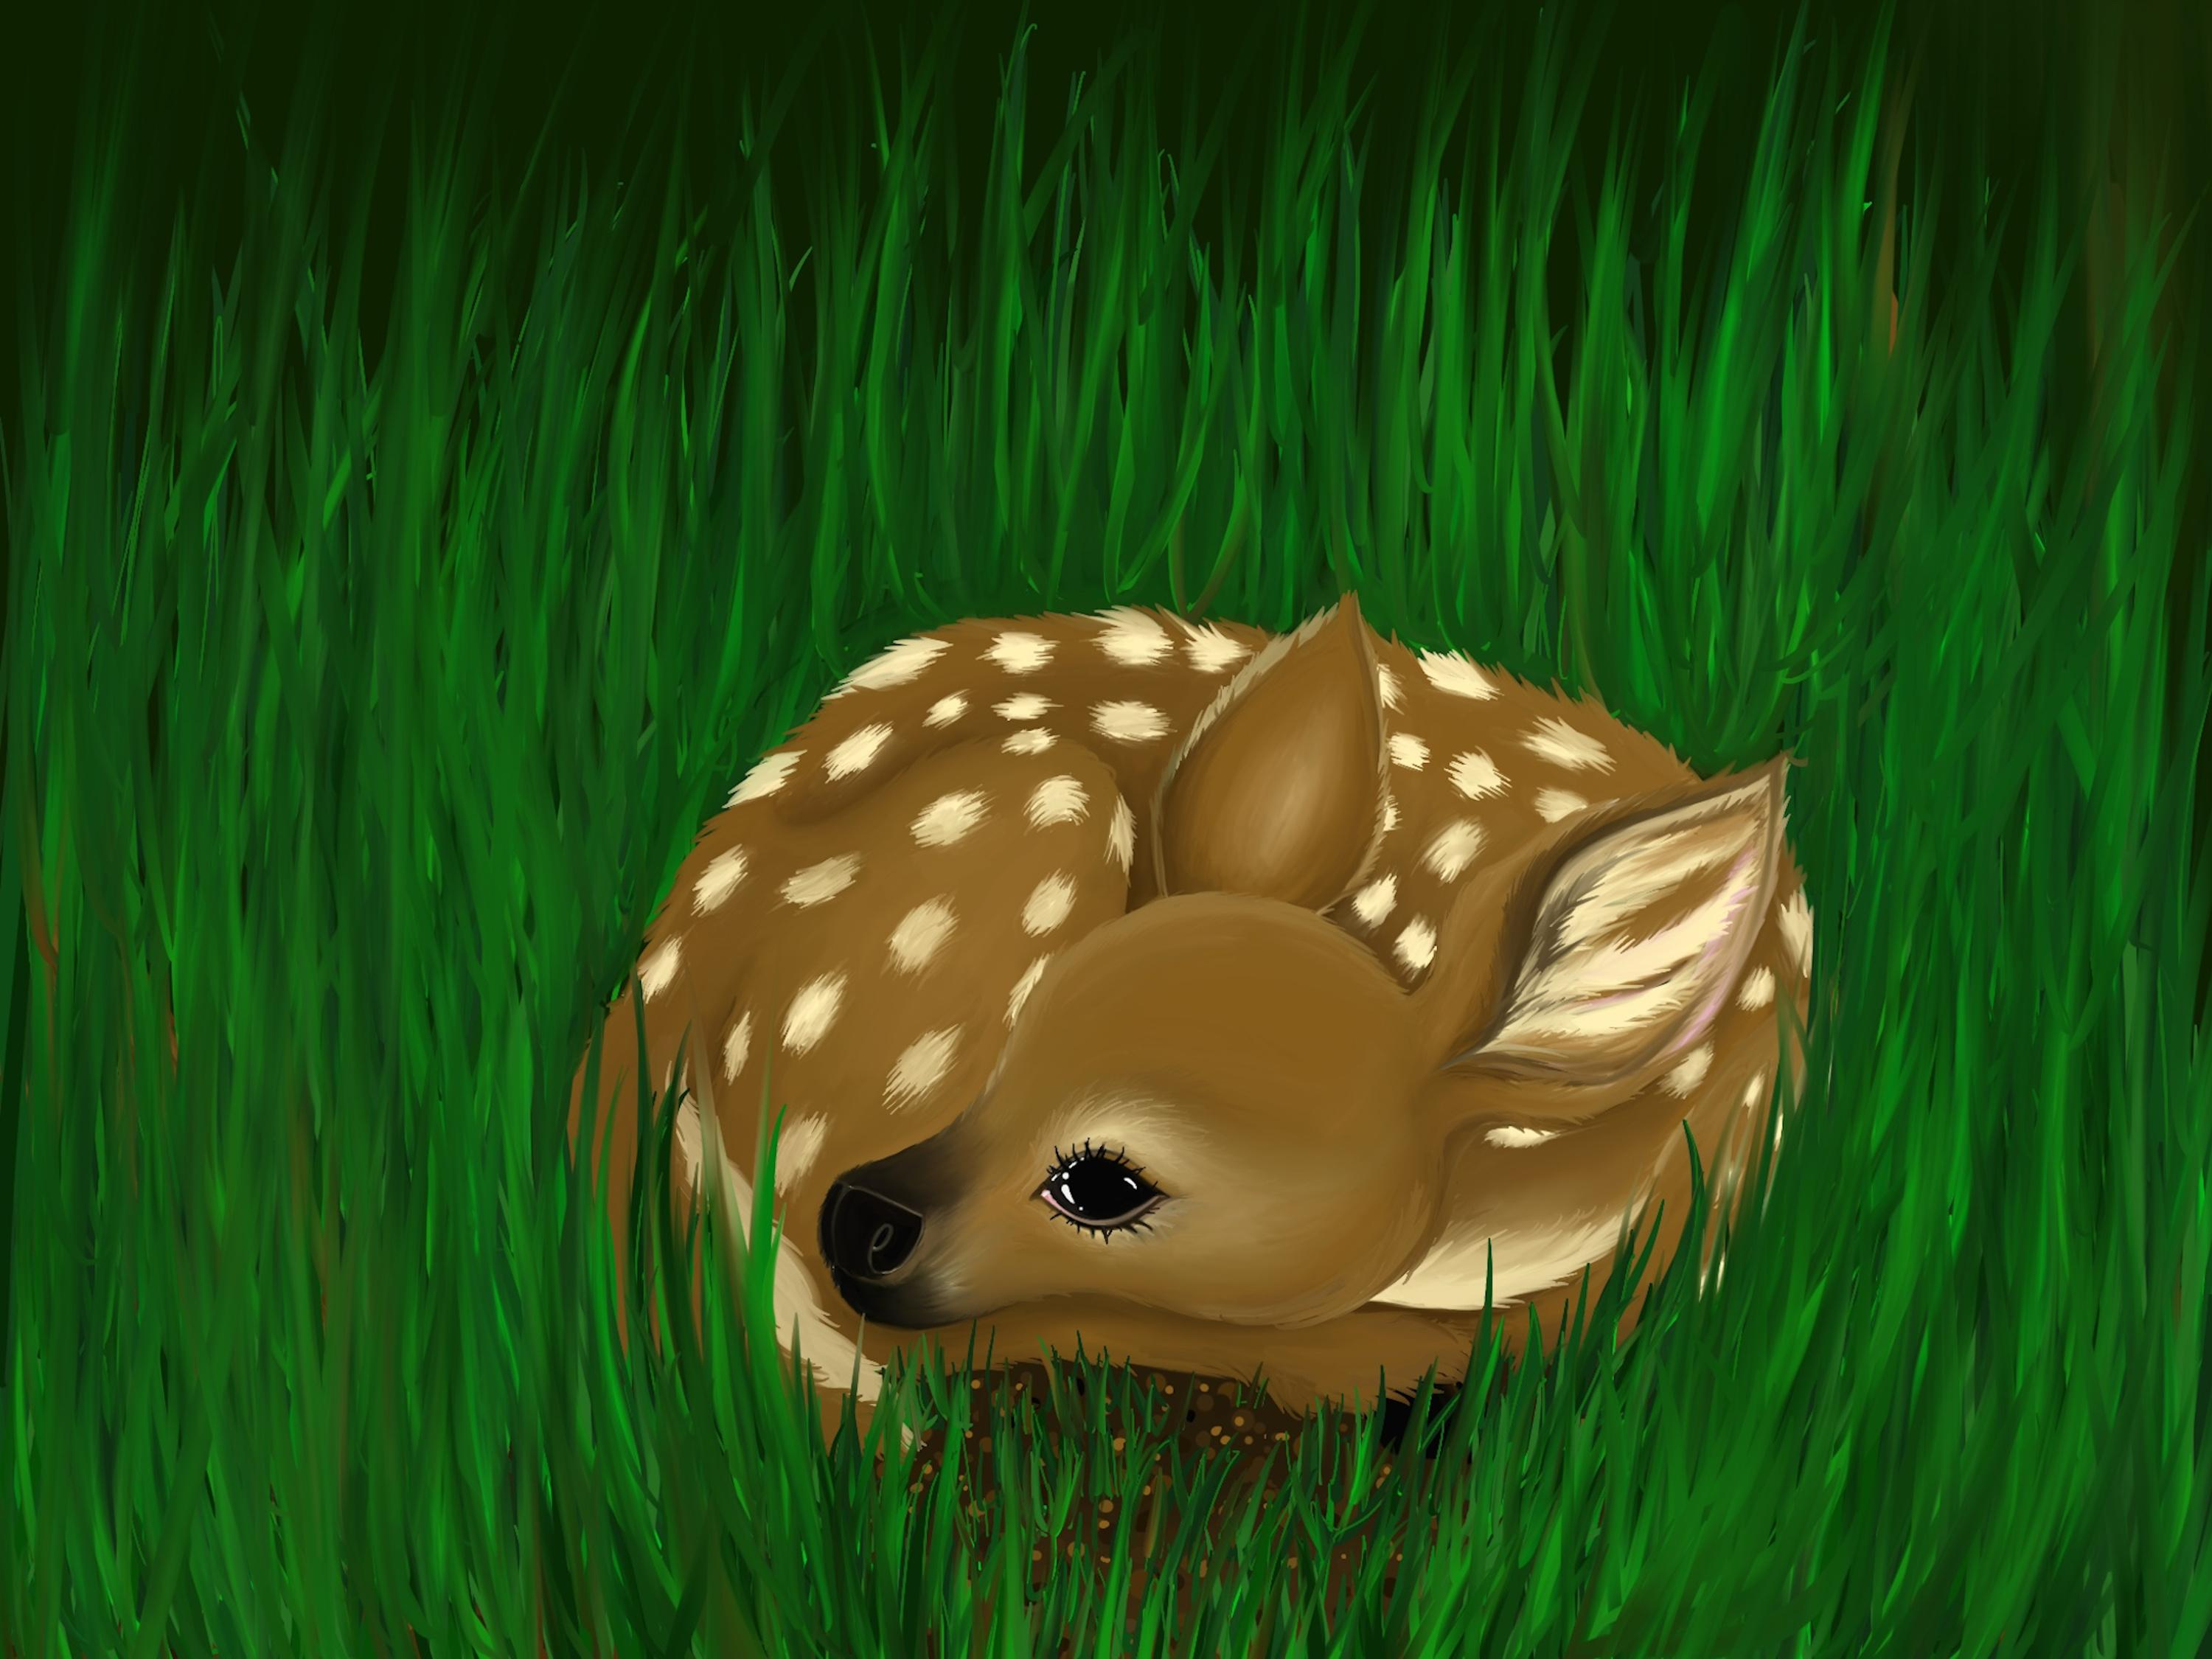 If you see a baby deer alone resting in the tall grass, leave them alone! Unless you know for a fact that the mother is dead, don't approach the fawn. Does will often leave their fawns in a safe place while they go to graze, only returning a few times a day and a night to nurse her fawn. This prevents attracting a predator to her young. If the mother feels seen by a puma or a wolf, she can run fast away fast enough. However, her young, small fawn cannot. So until her offspring are strong enough to survive in the open, the fawn will remain in their safe spot, hidden from predators.